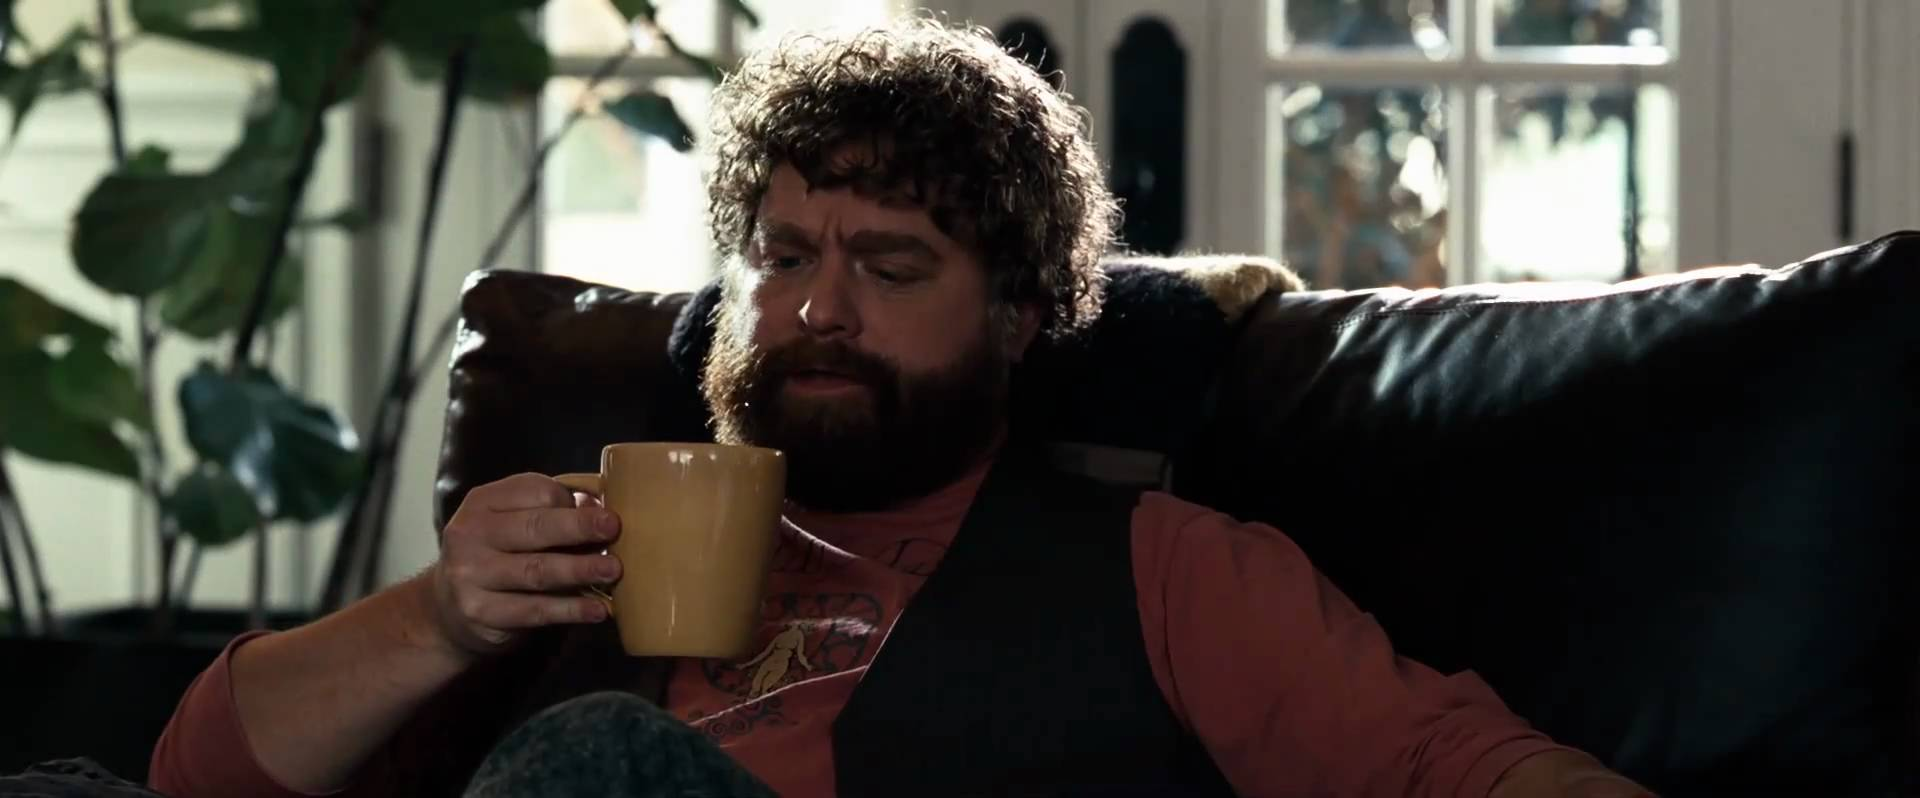 7 Coffee Myths Debunked or Confirmed, with Zach Galifianakis Pictures